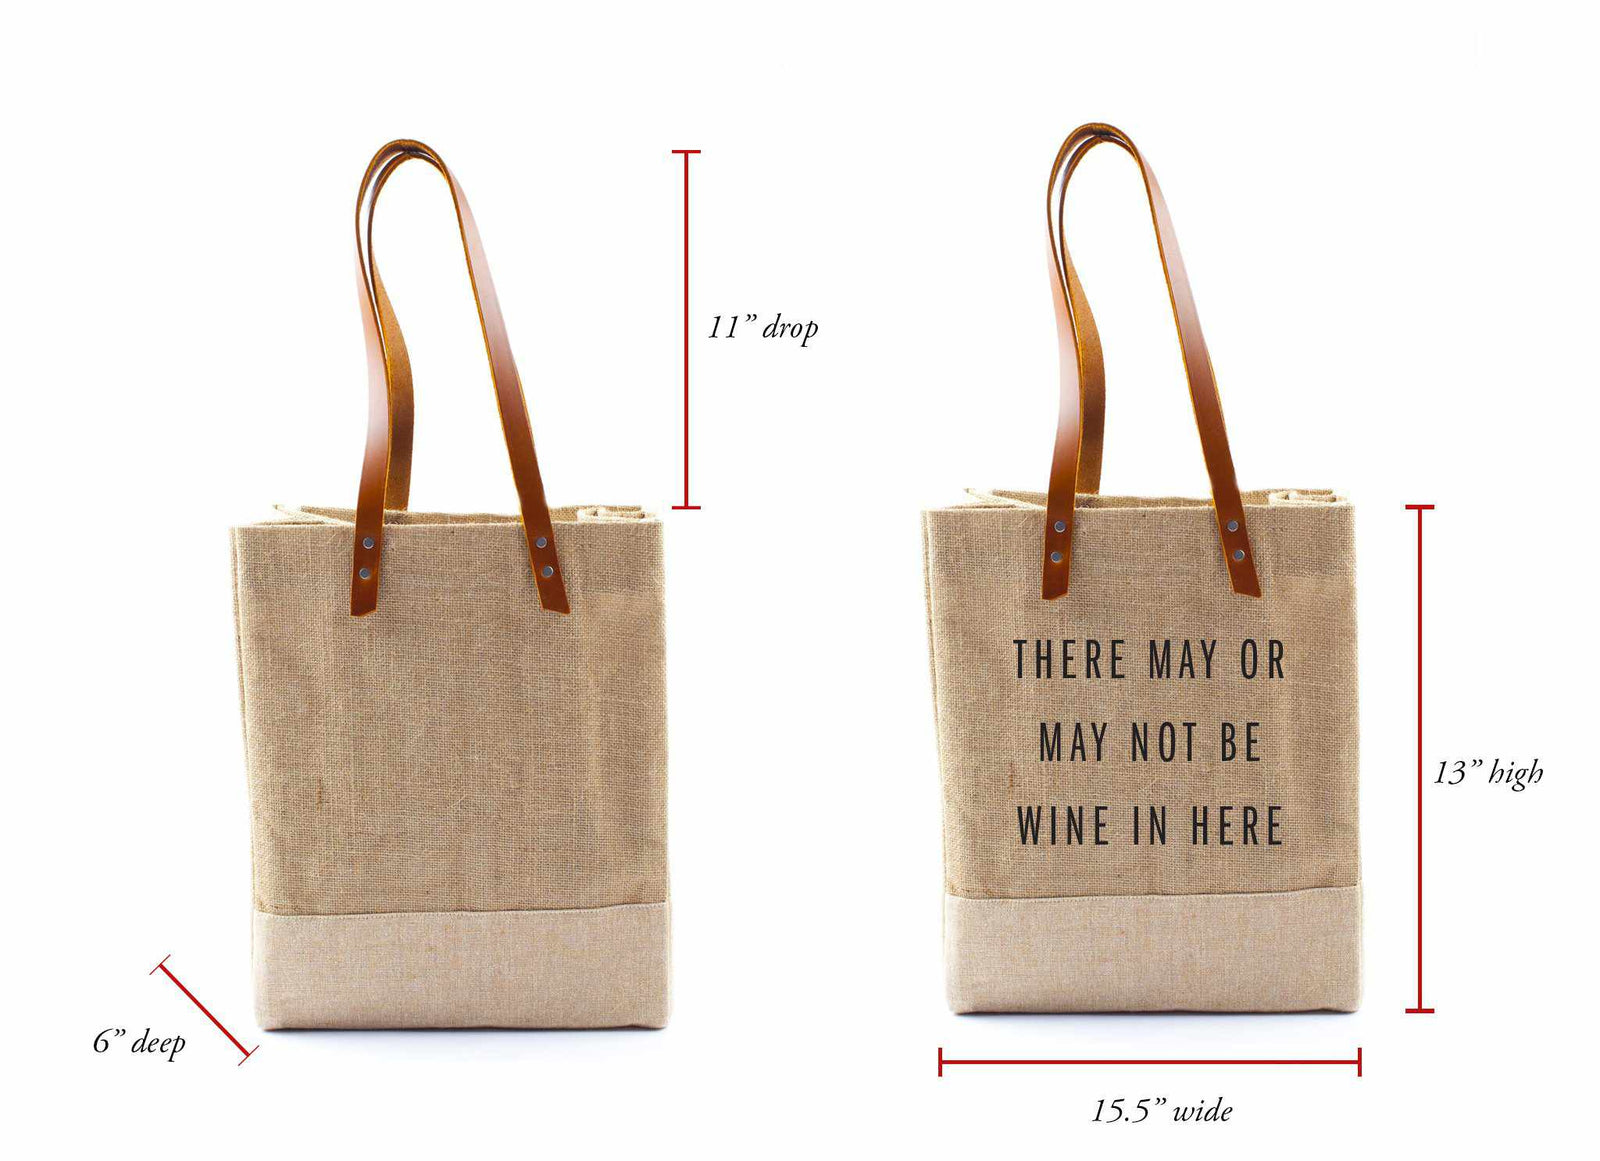 'There May or May Not Be Wine In Here' Wine Tote, through Dec. 15 Only